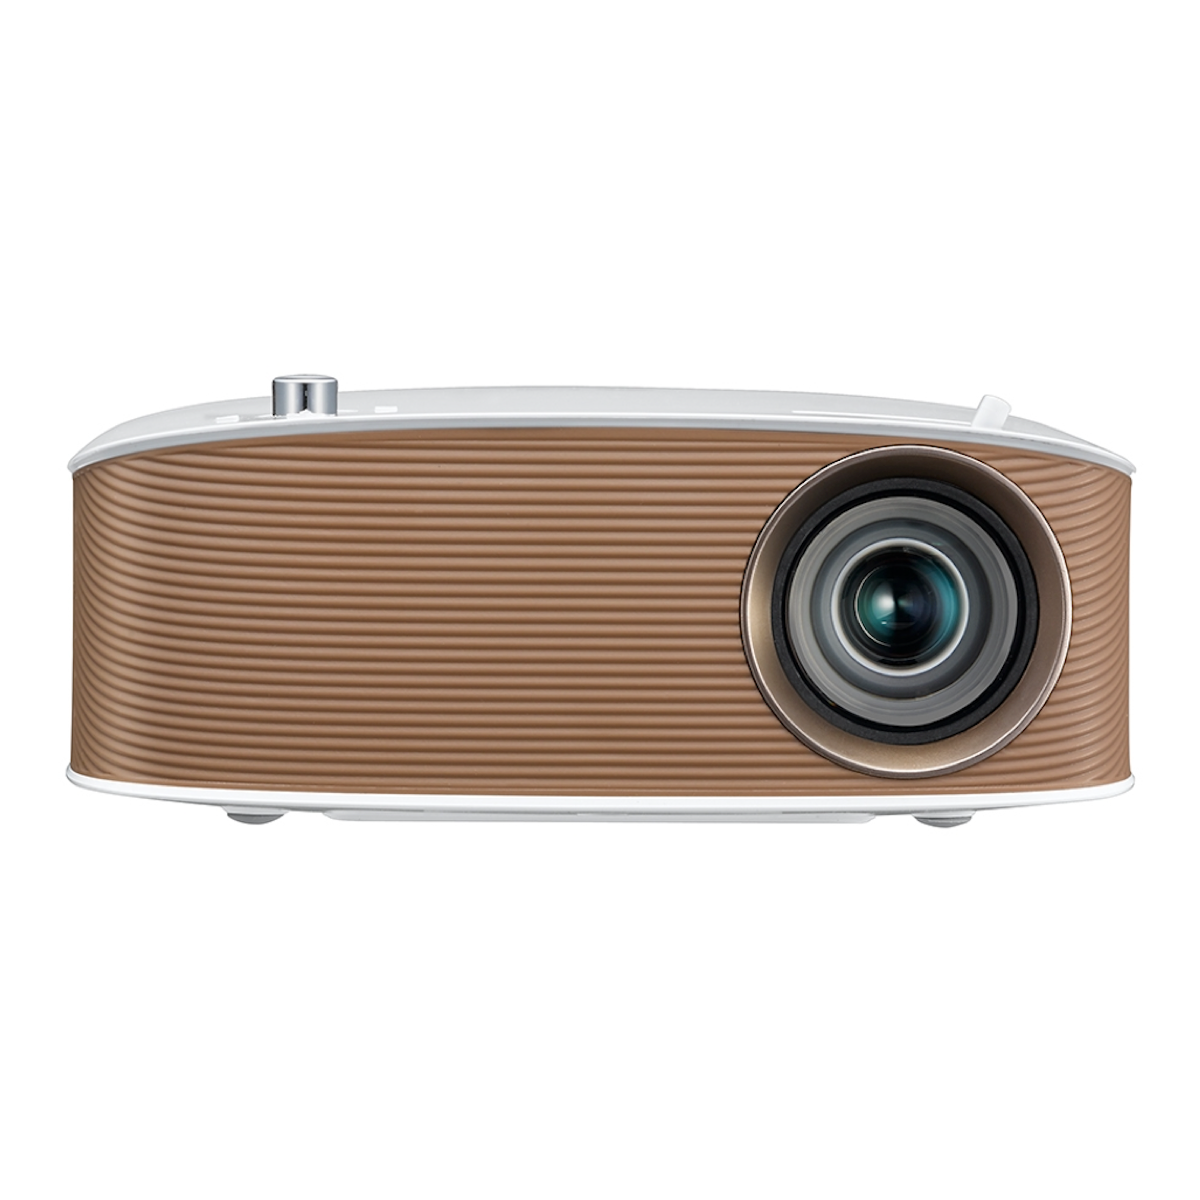 LG Projectors PH150G - LED CineBeam Projector - AVStore.in